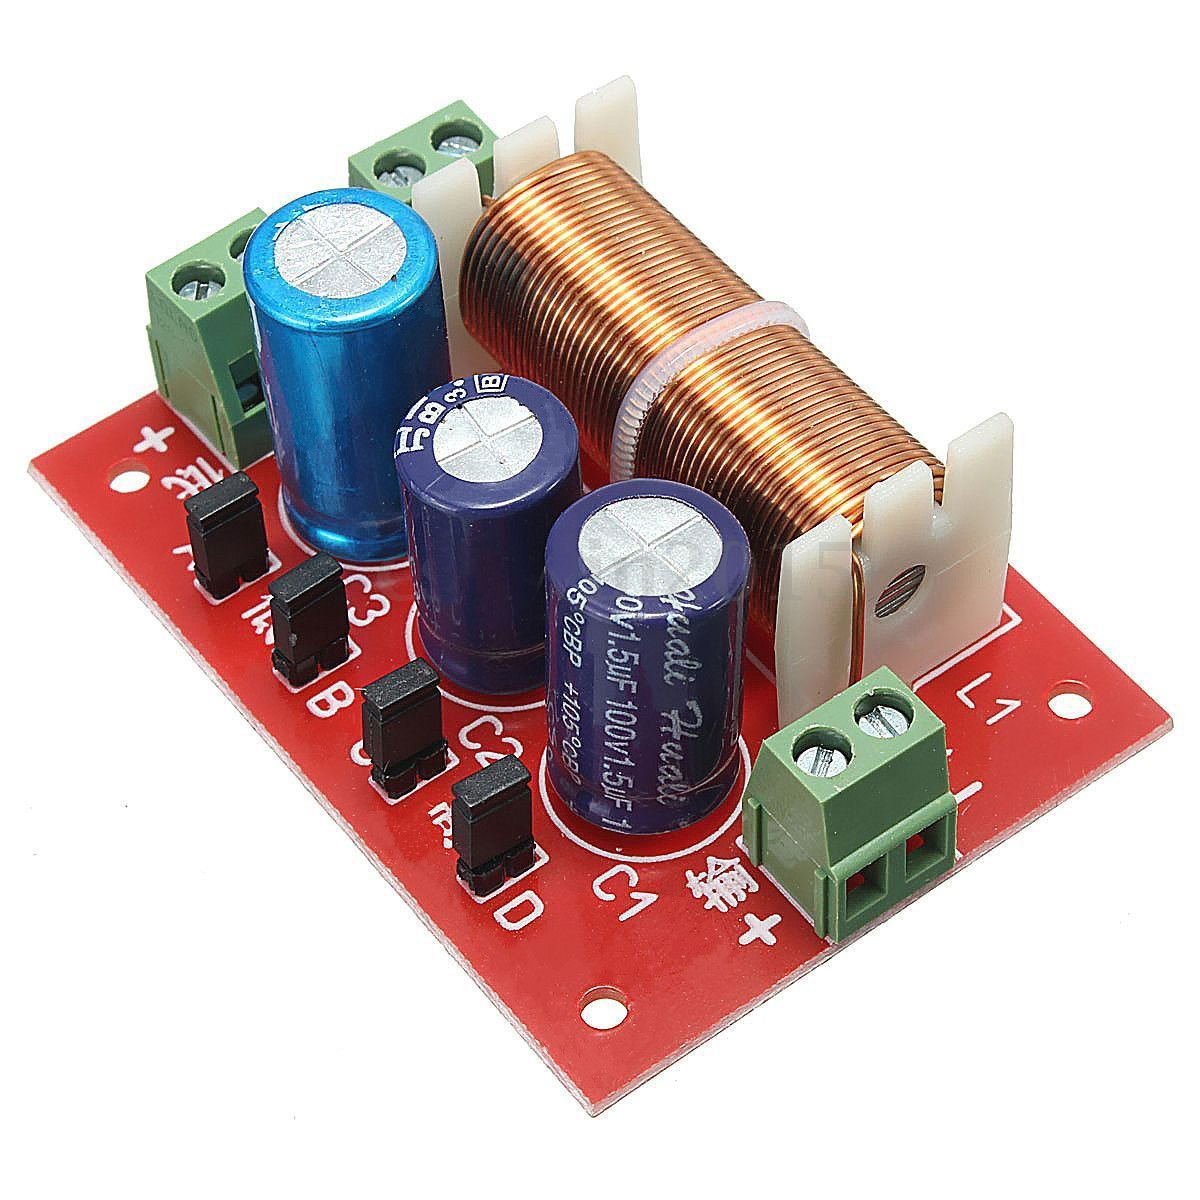 Qianson 400w Ajustable Treble Bass Frequency Divider Way Speaker Crossover Circuit Schematic Electronics Distributor 2 Audio Filters Home Theater